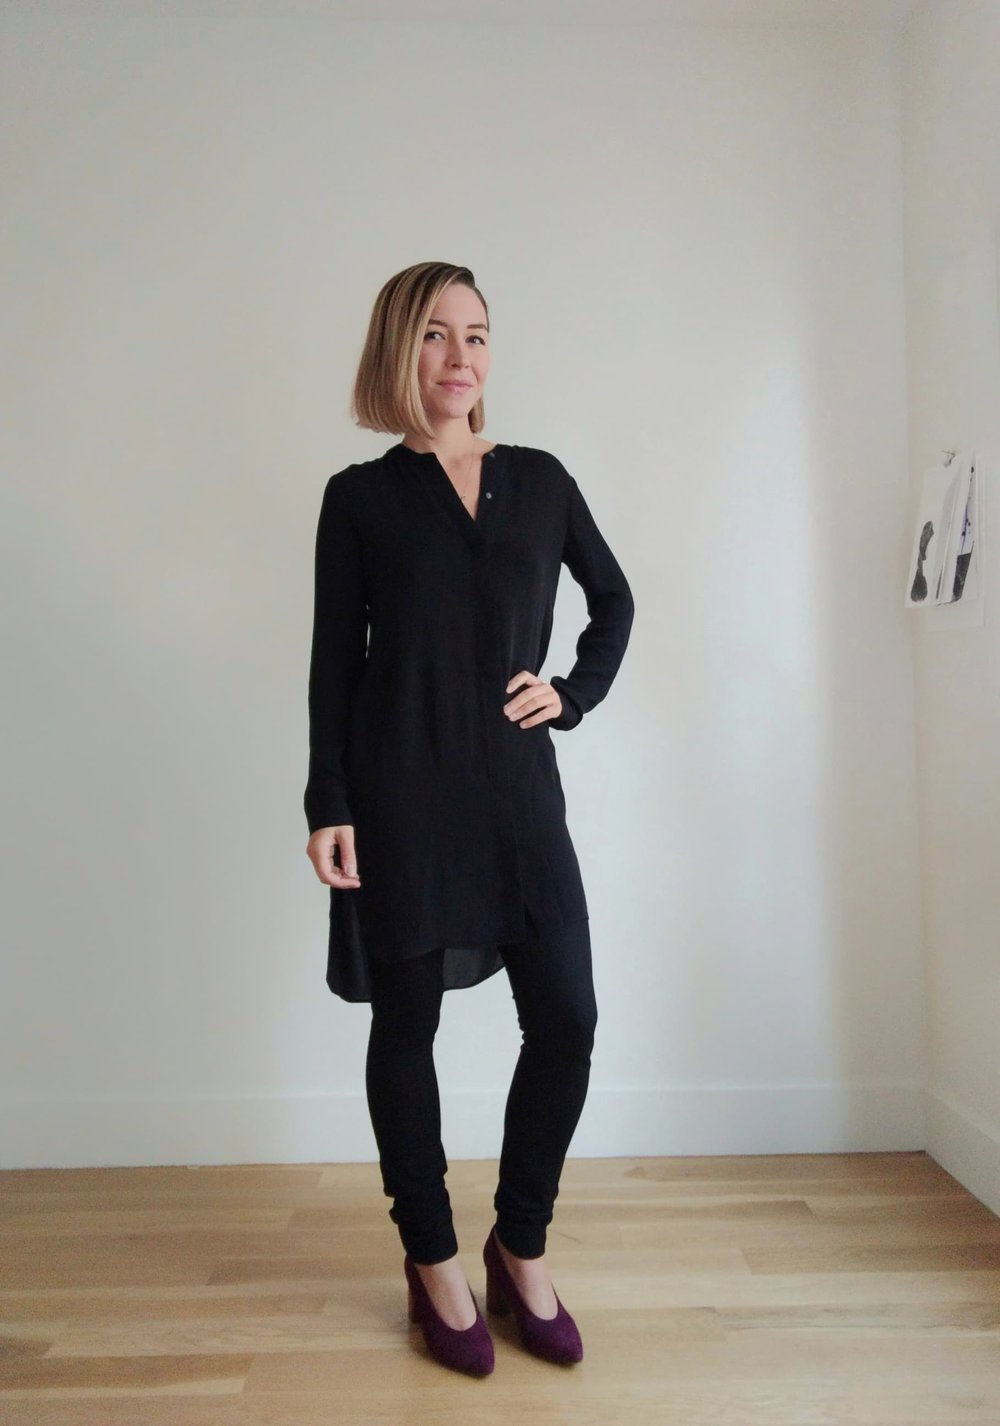 black silk shirtdress from aritzia paired with legging fit trousers from banana republic